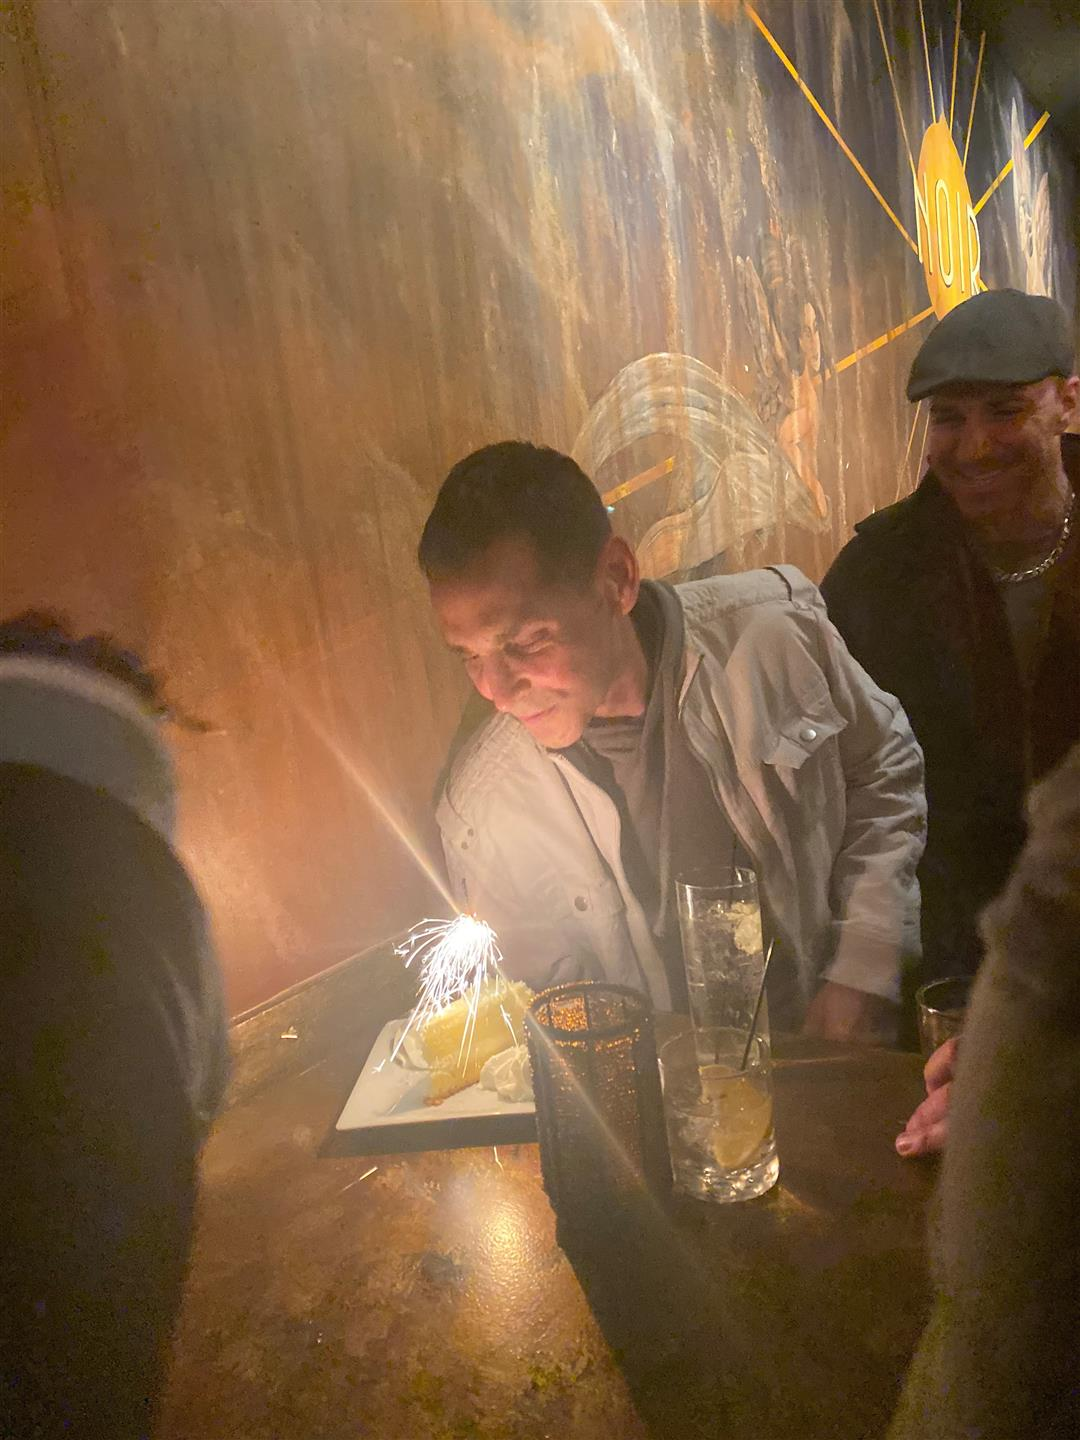 A man blowing out a candle on a piece of cake